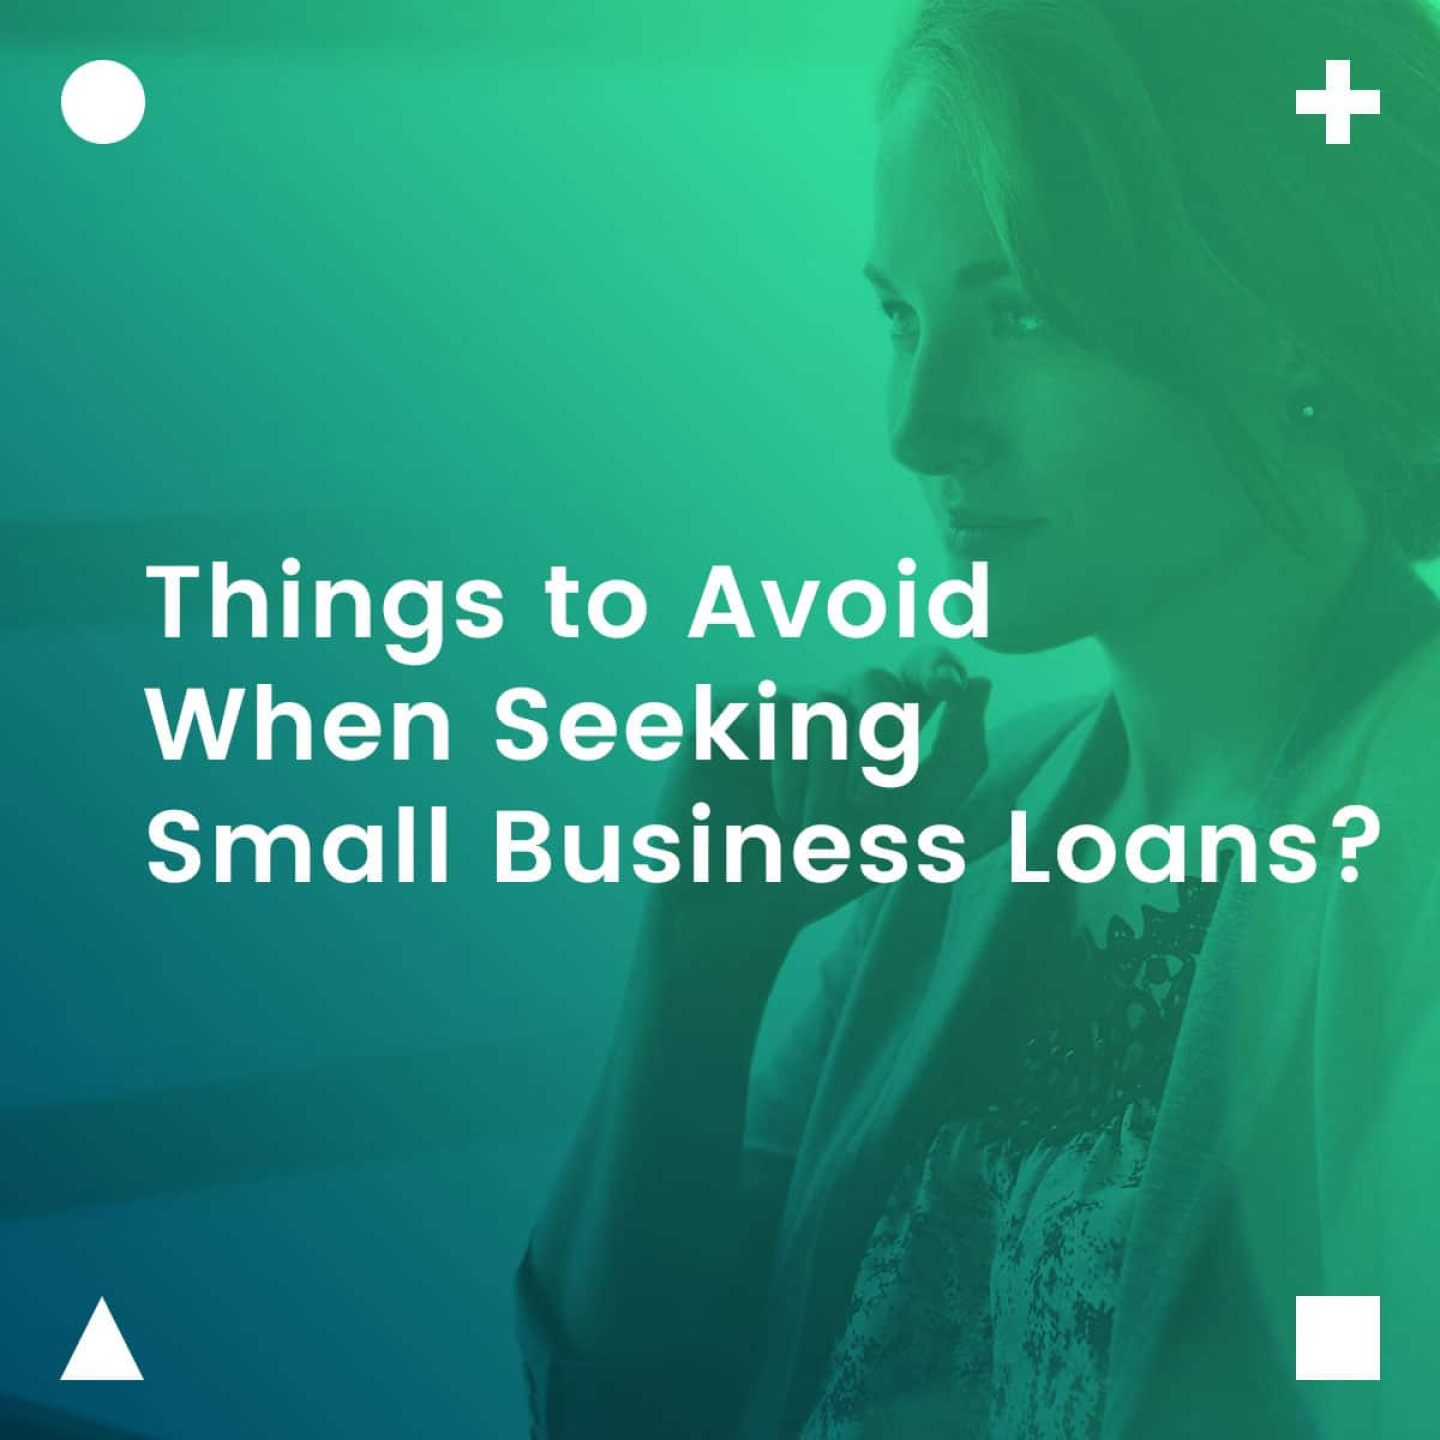 Things-to-Avoid-When-Seeking-Small-Business-Loans